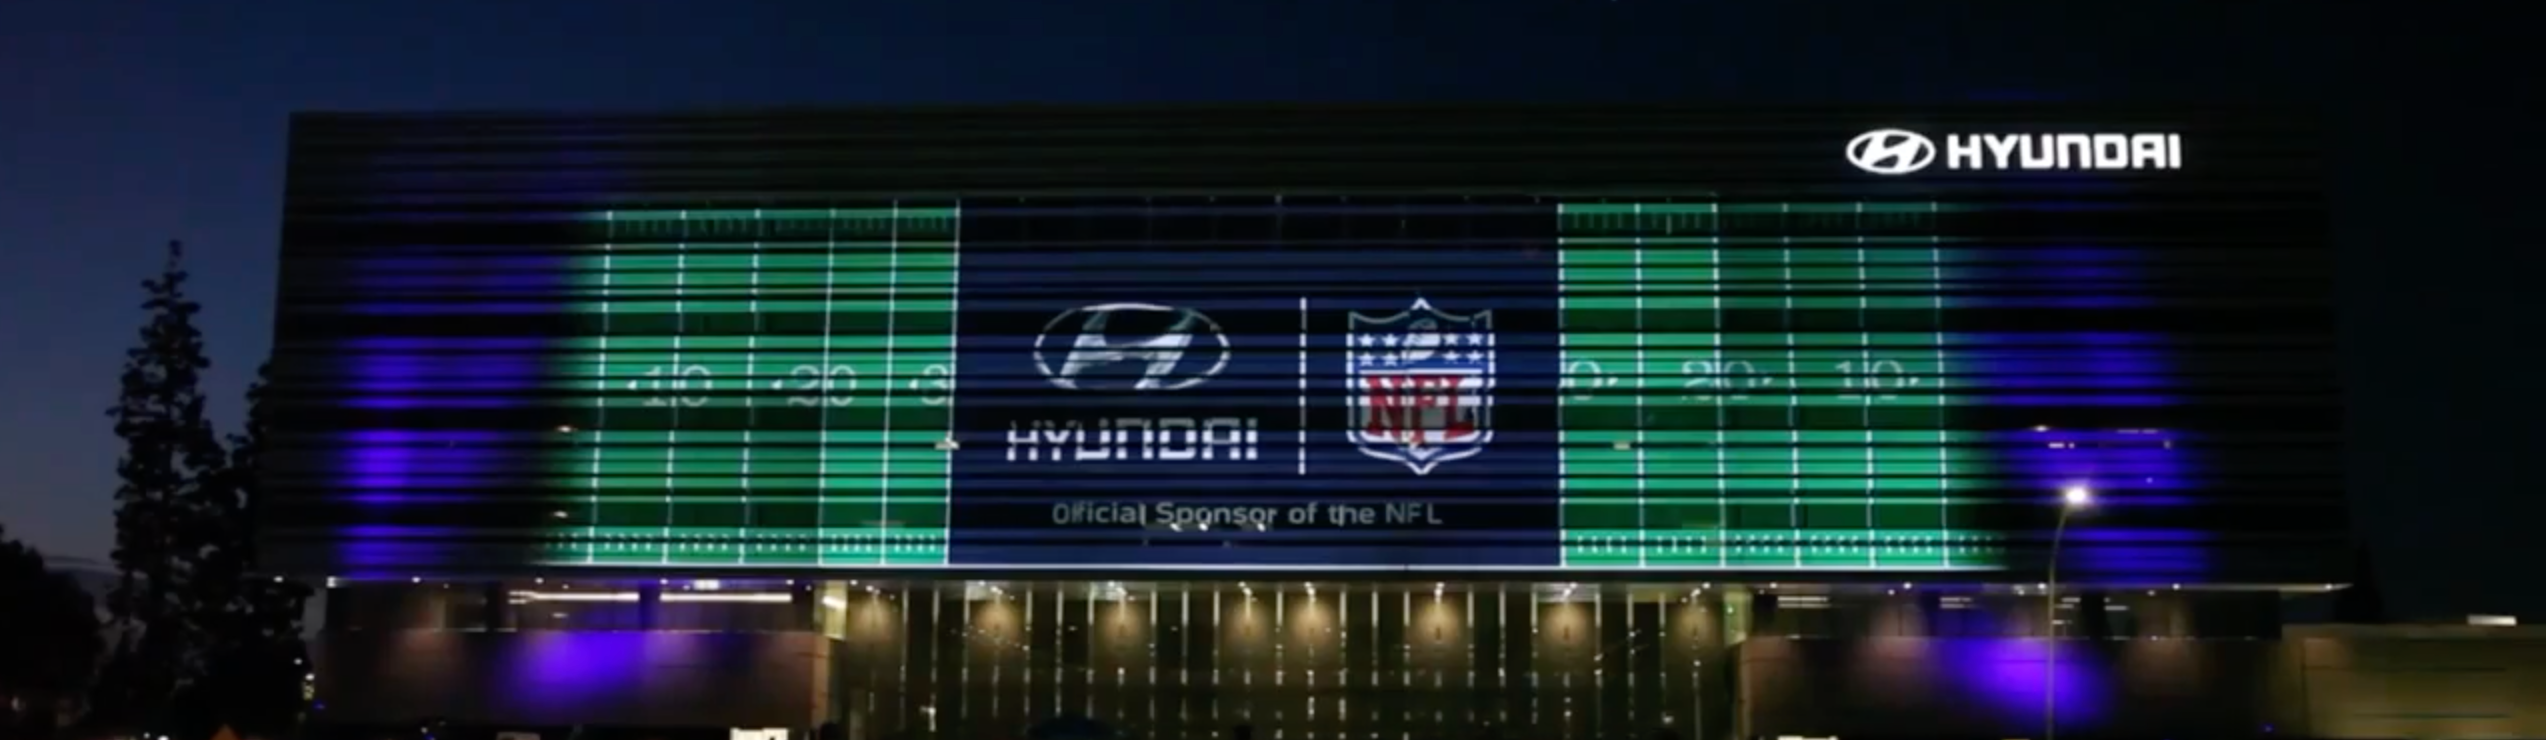 Video mapping of NFL design on the side of Hyundai building